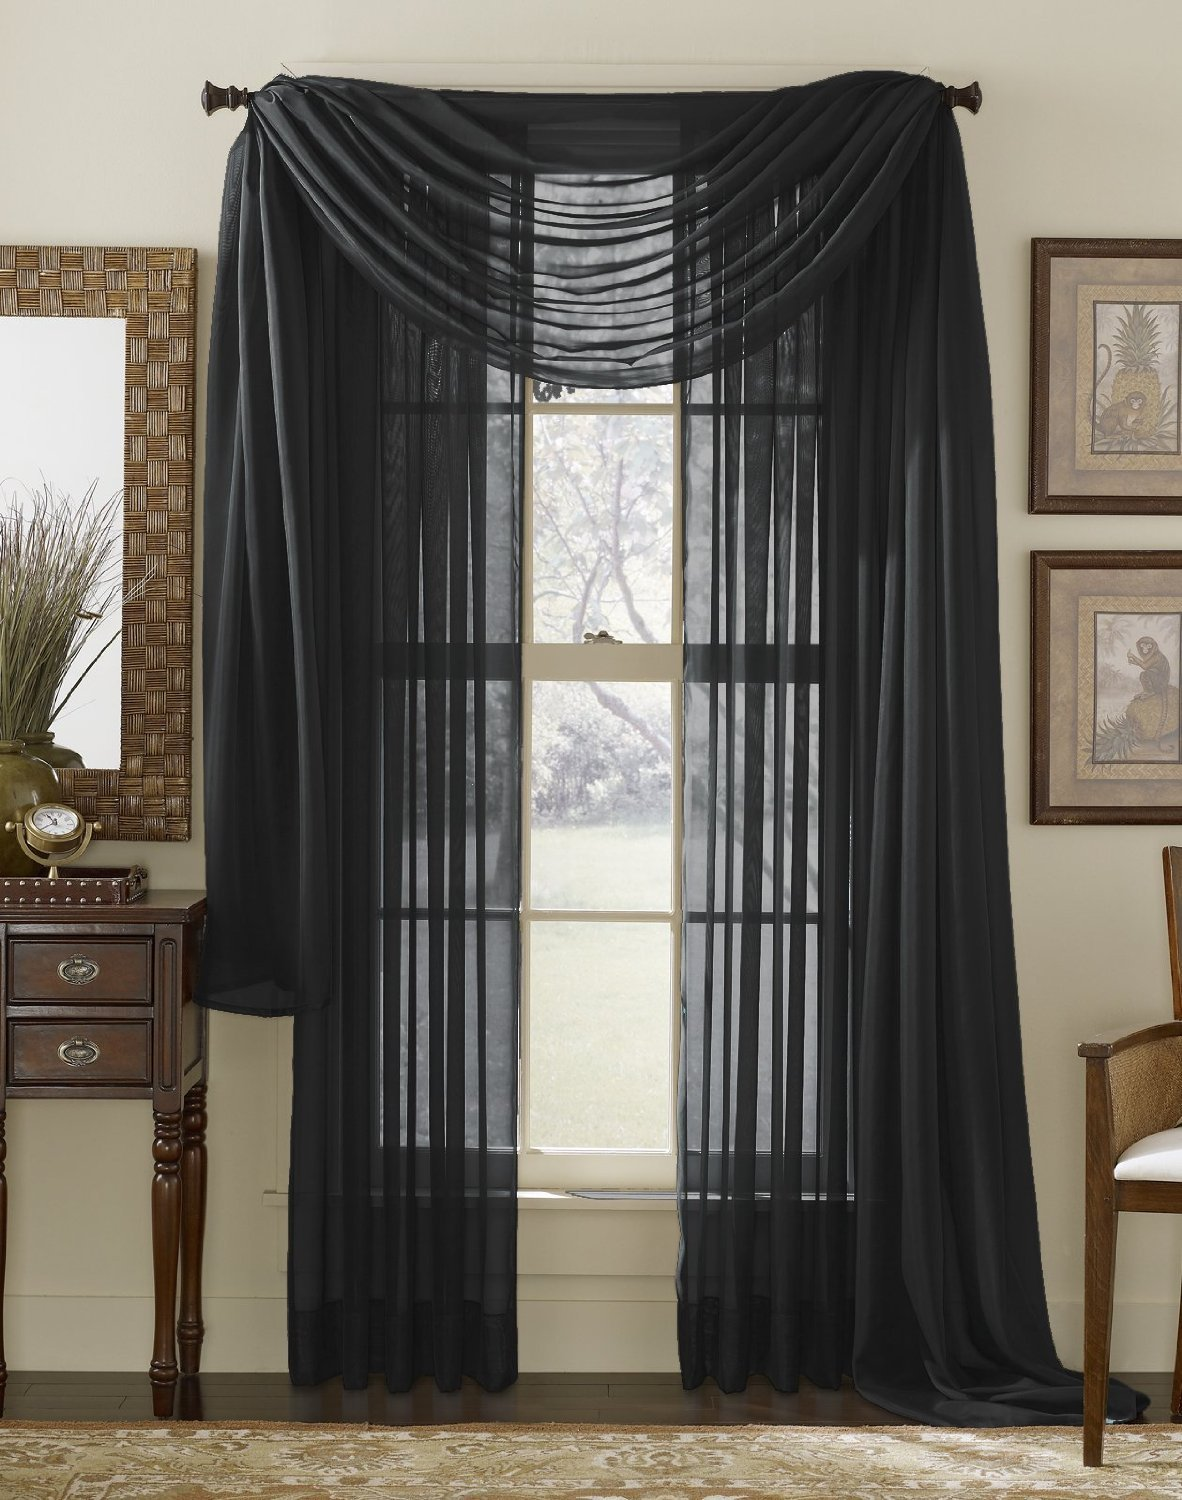 HLC.ME Black Sheer Voile Window Curtain Scarf - Valance